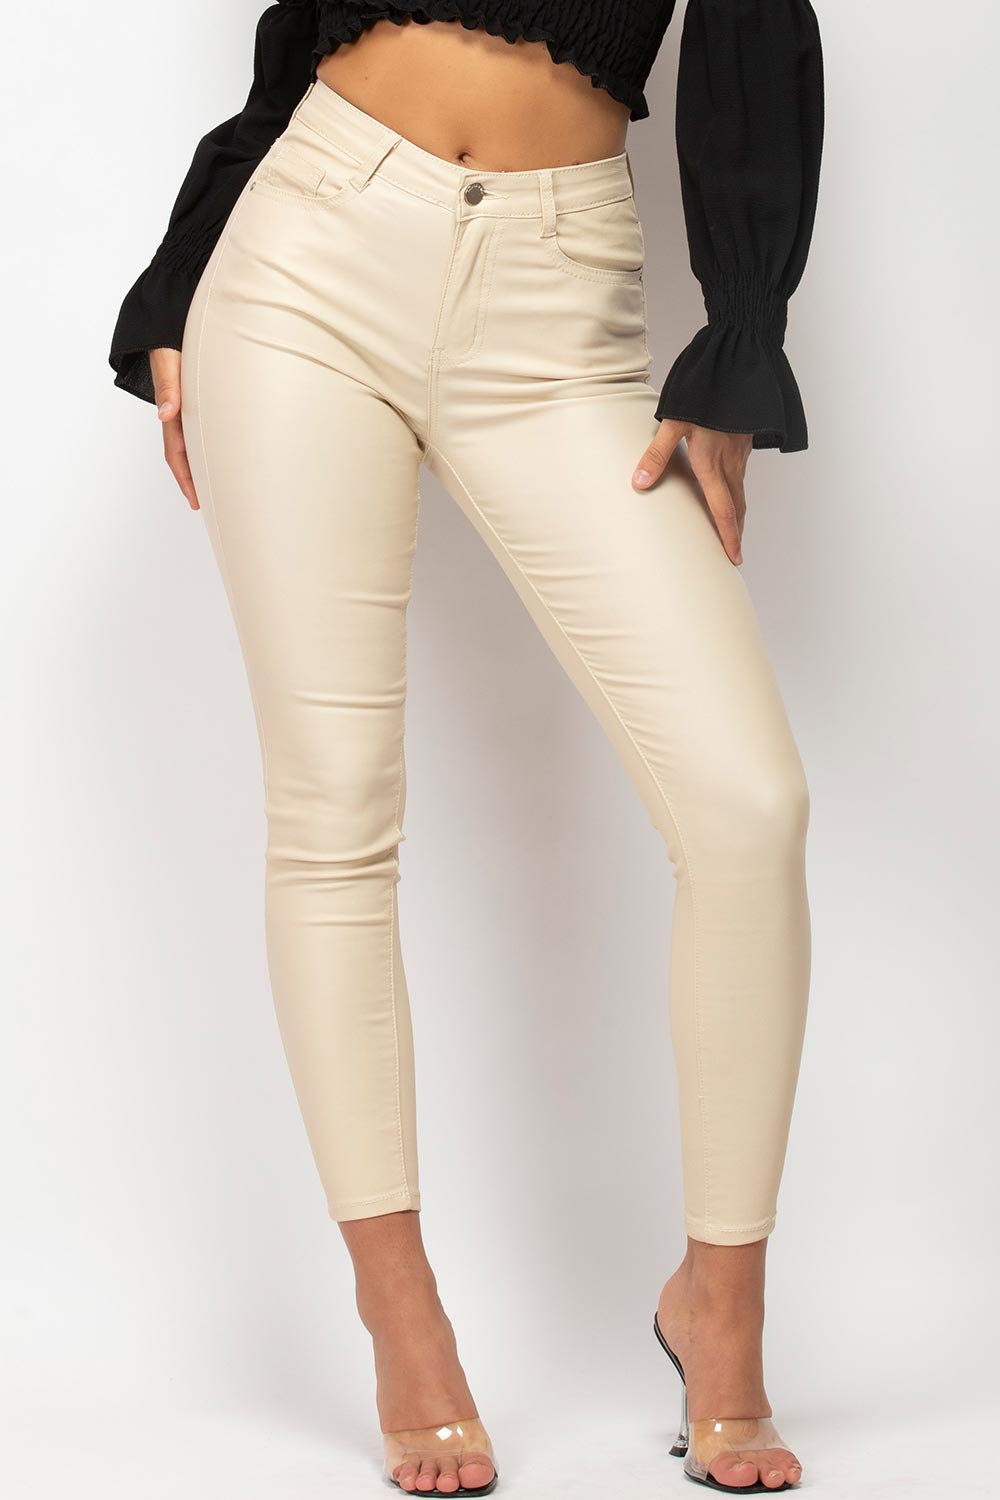 beige high waisted coated denim jeans womens